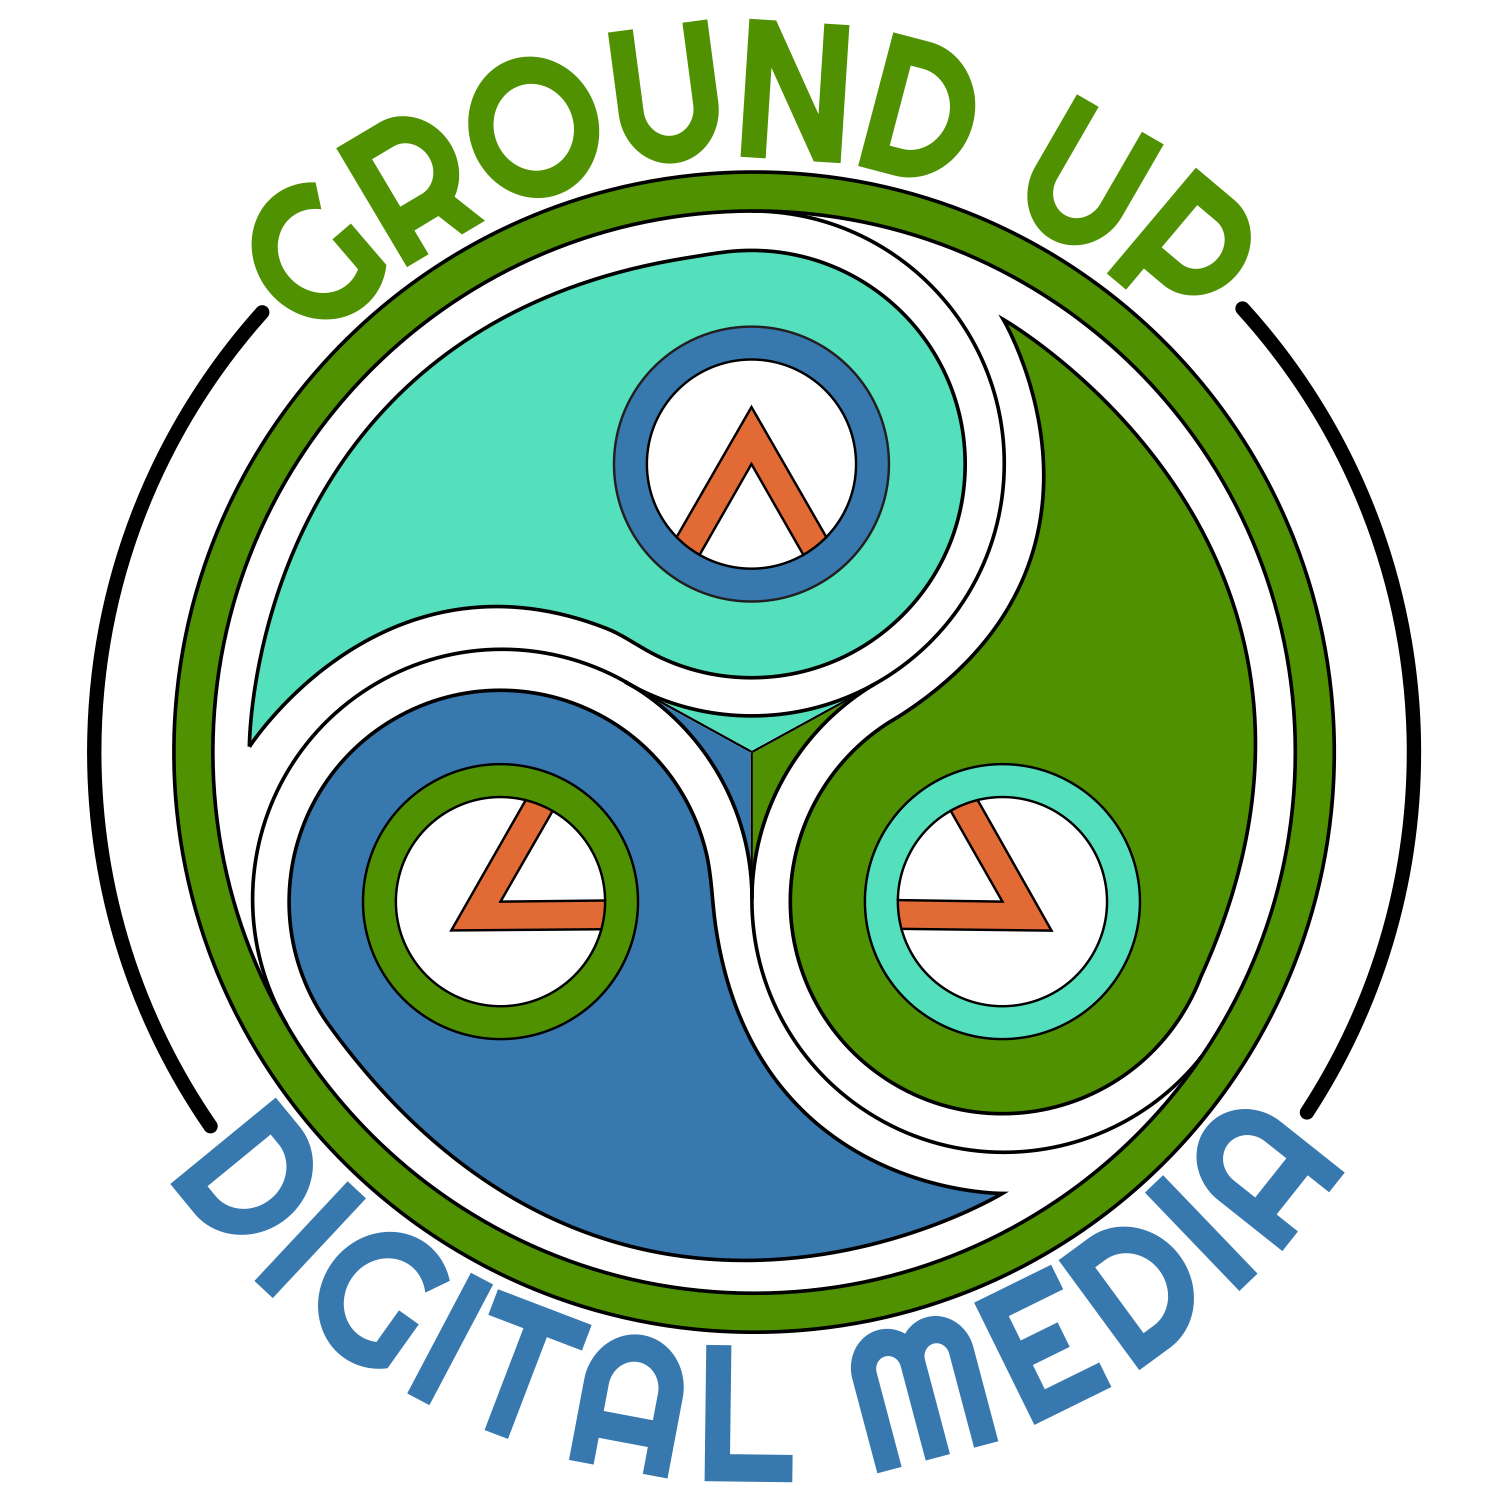 Ground Up Digital Media